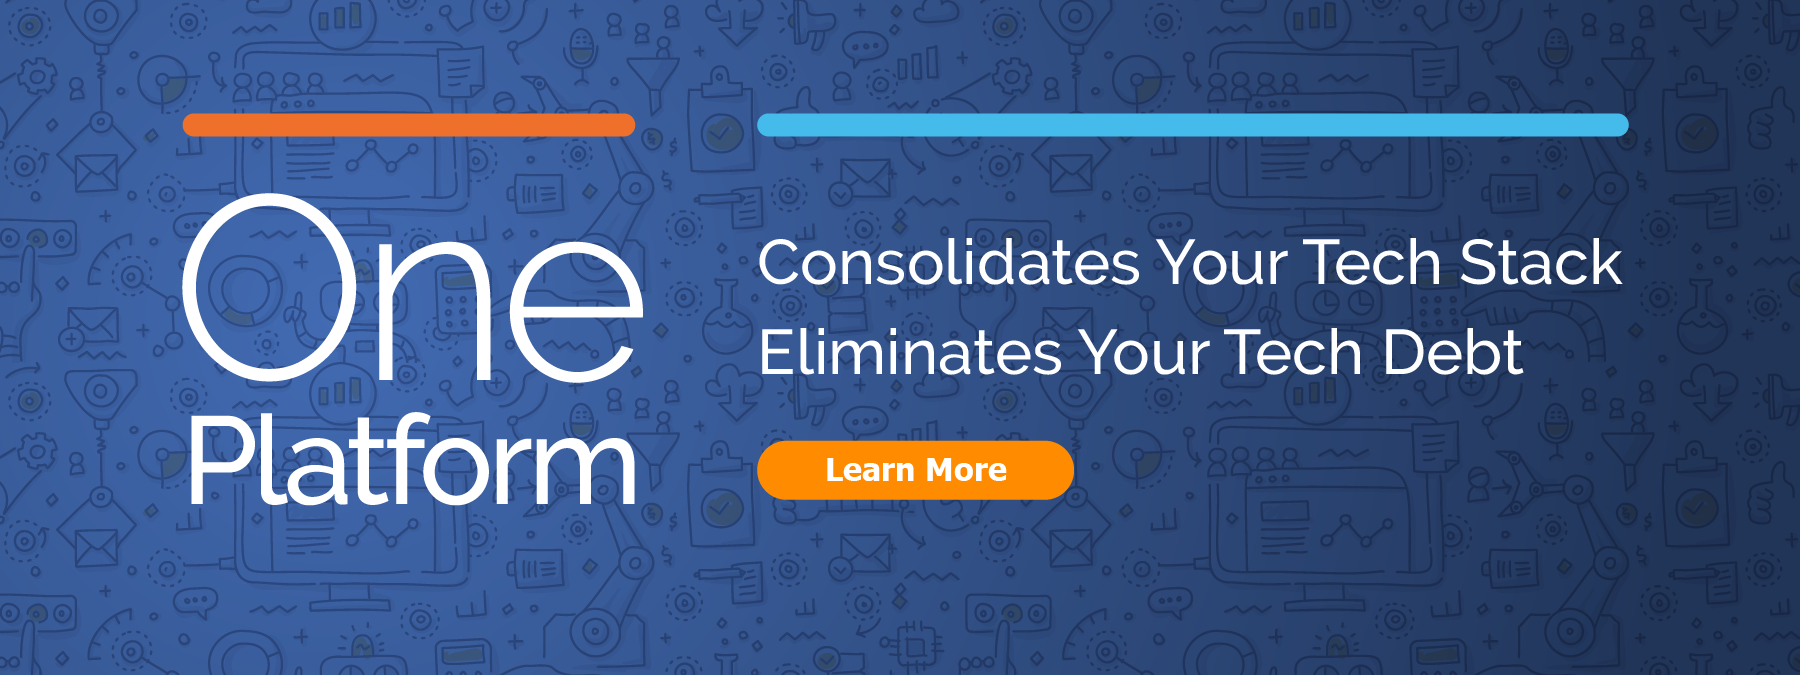 One Platform - Consolidates Your Tech Stack. Eliminates Your Tech Debt